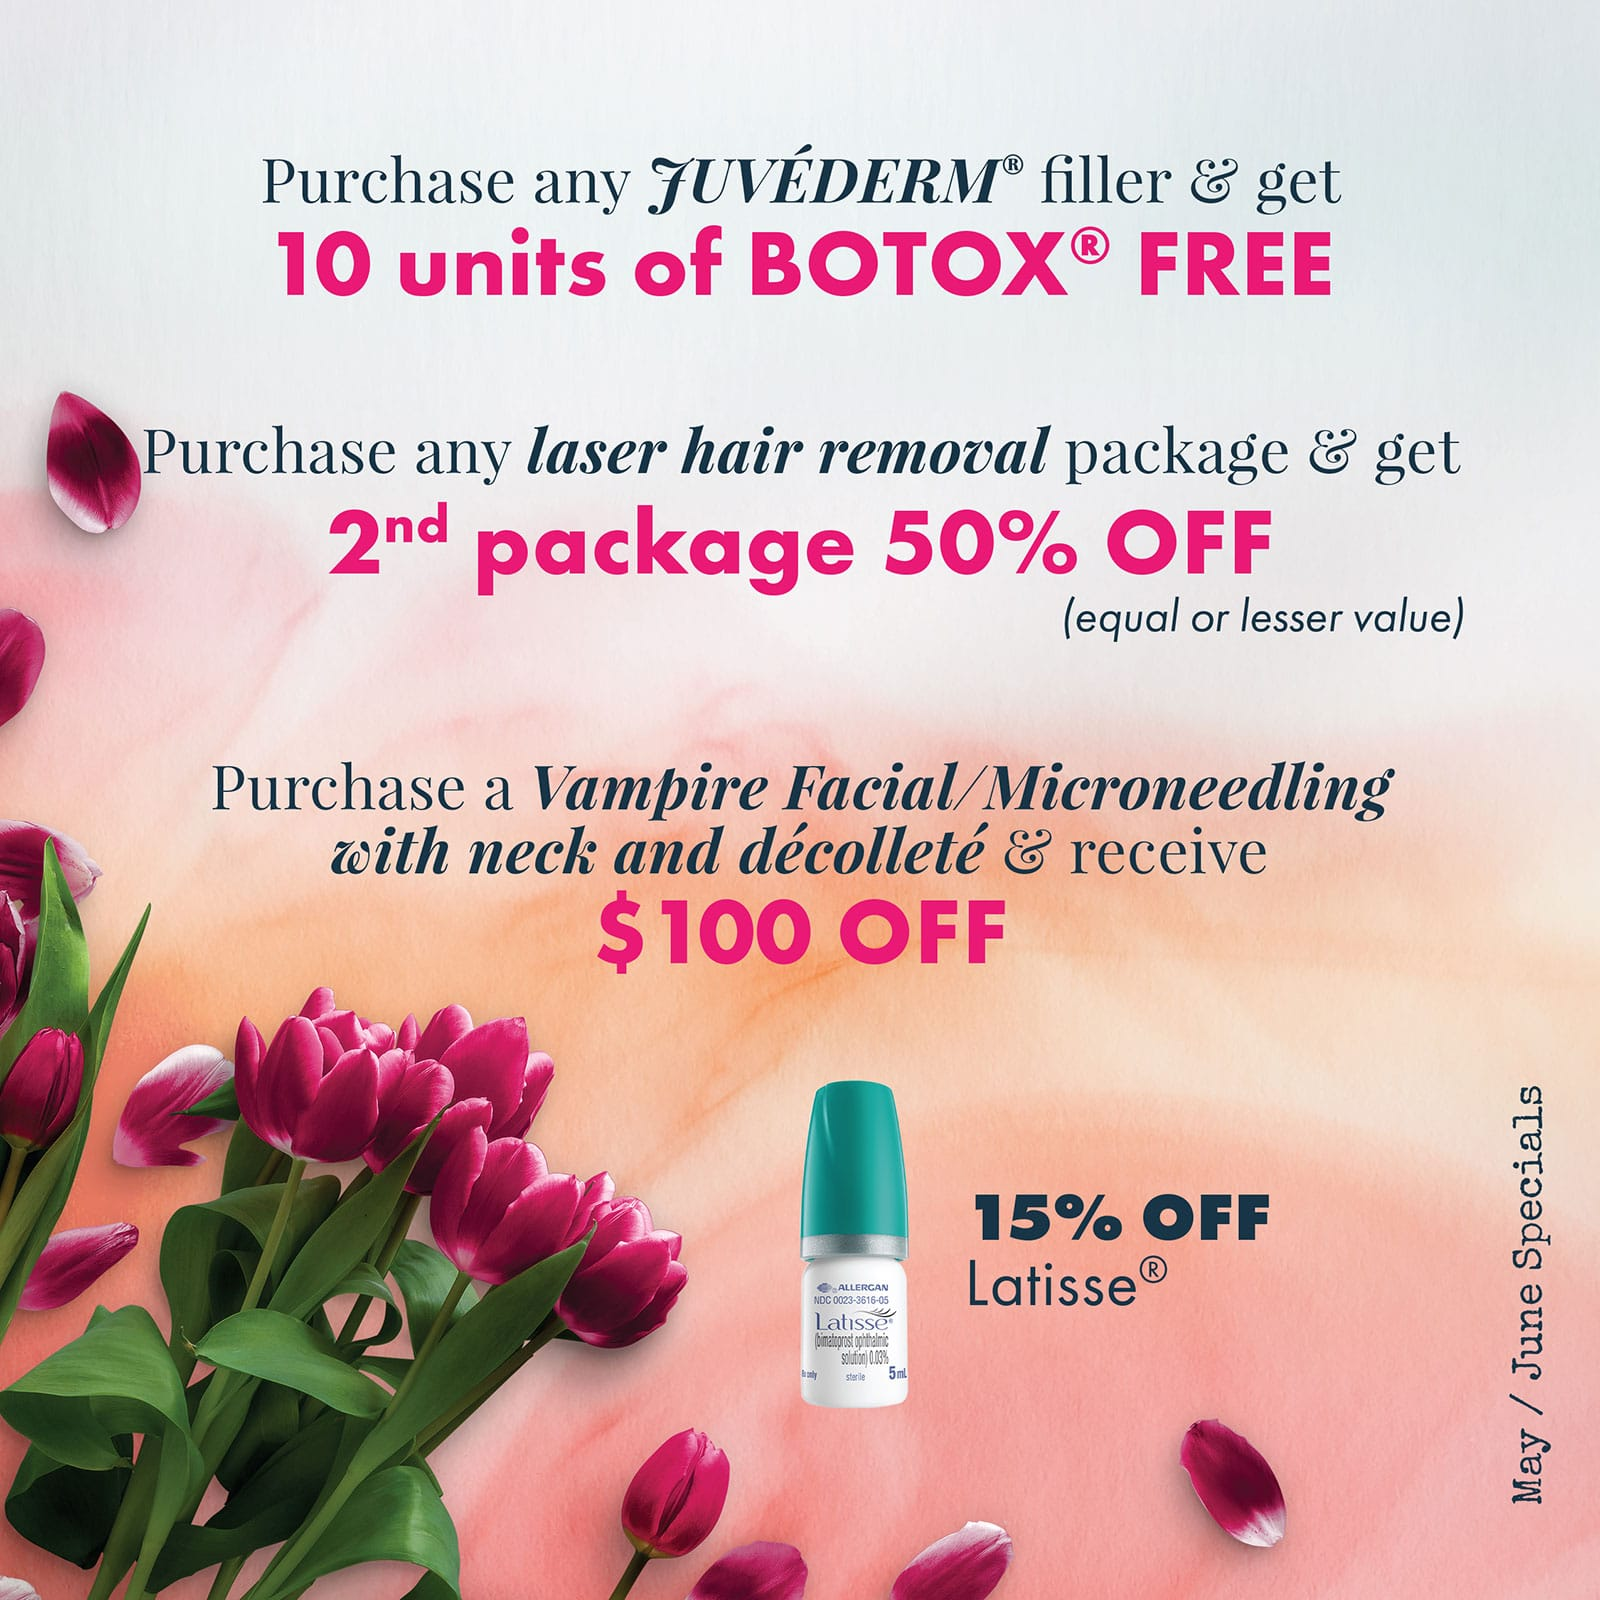 Make today about you! 10 units of BOTOX® FREE and more... Inbox